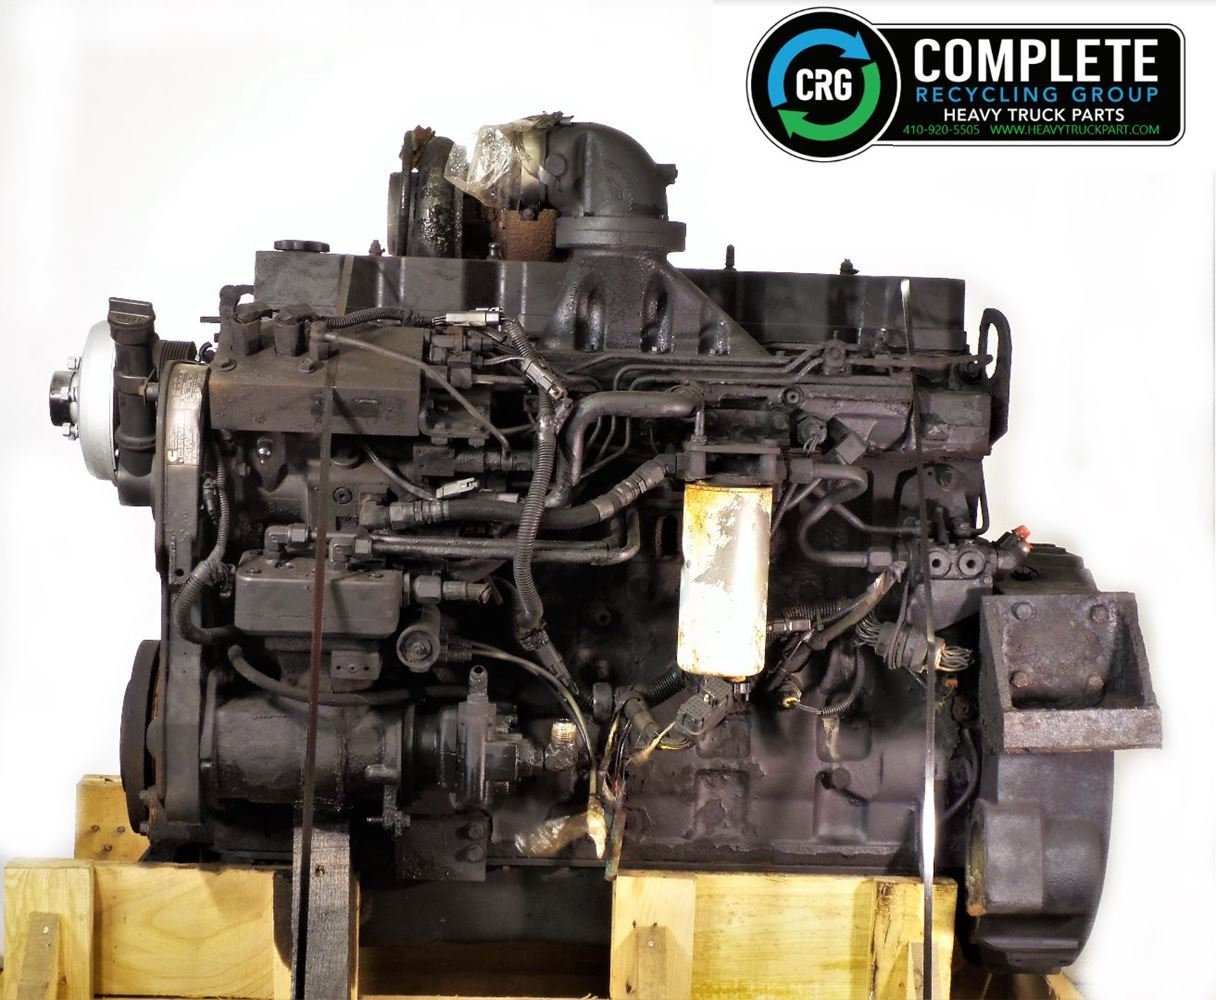 2002 CUMMINS ISC ENGINE ASSEMBLY TRUCK PARTS #679865